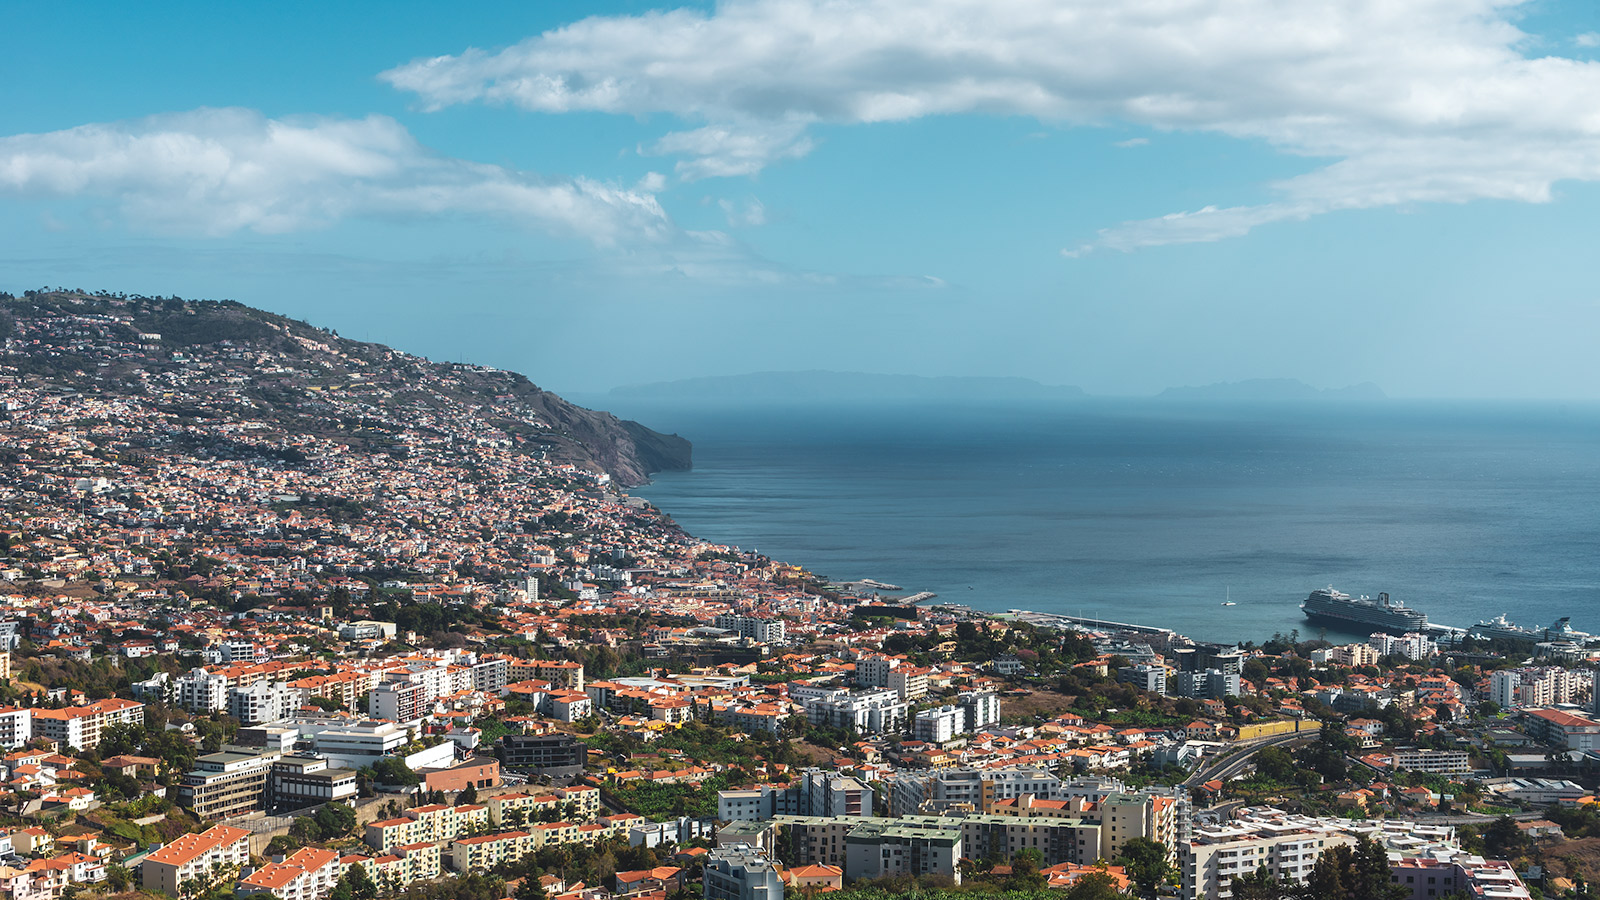 Views of Funchal from the Pico dos Barcelos viewpoint, Madeira